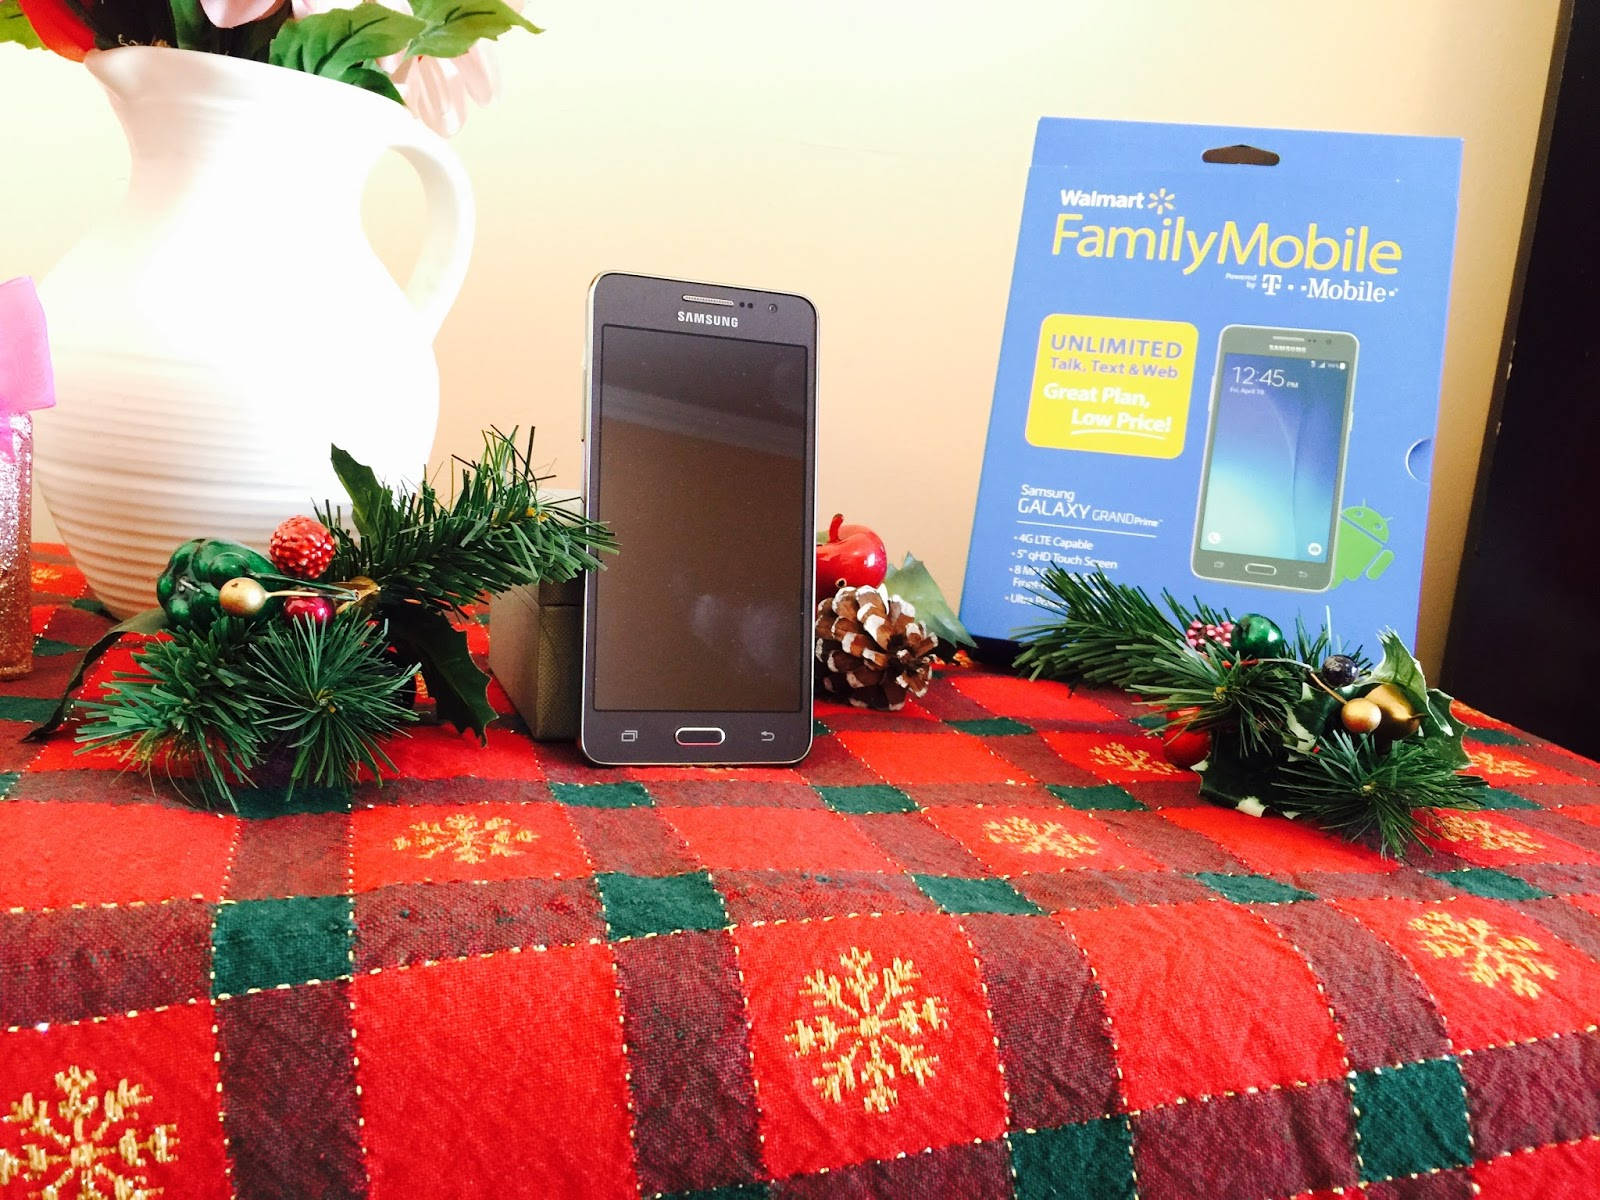 walmart family mobile plus, samsung galaxy grandprime, samsung phone, walmart family mobile,